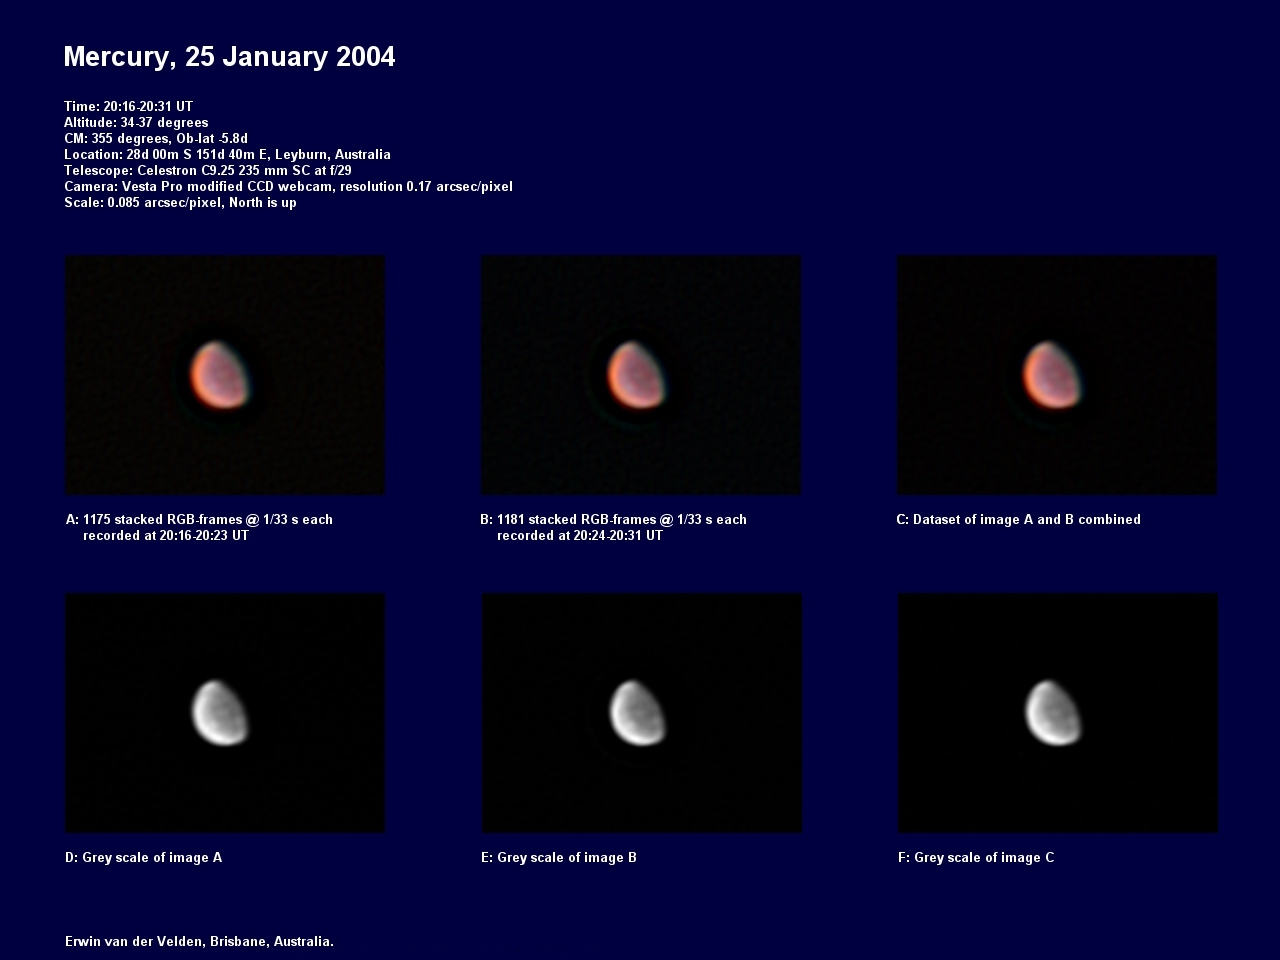 Mercury image captured on the 25th of January 2004